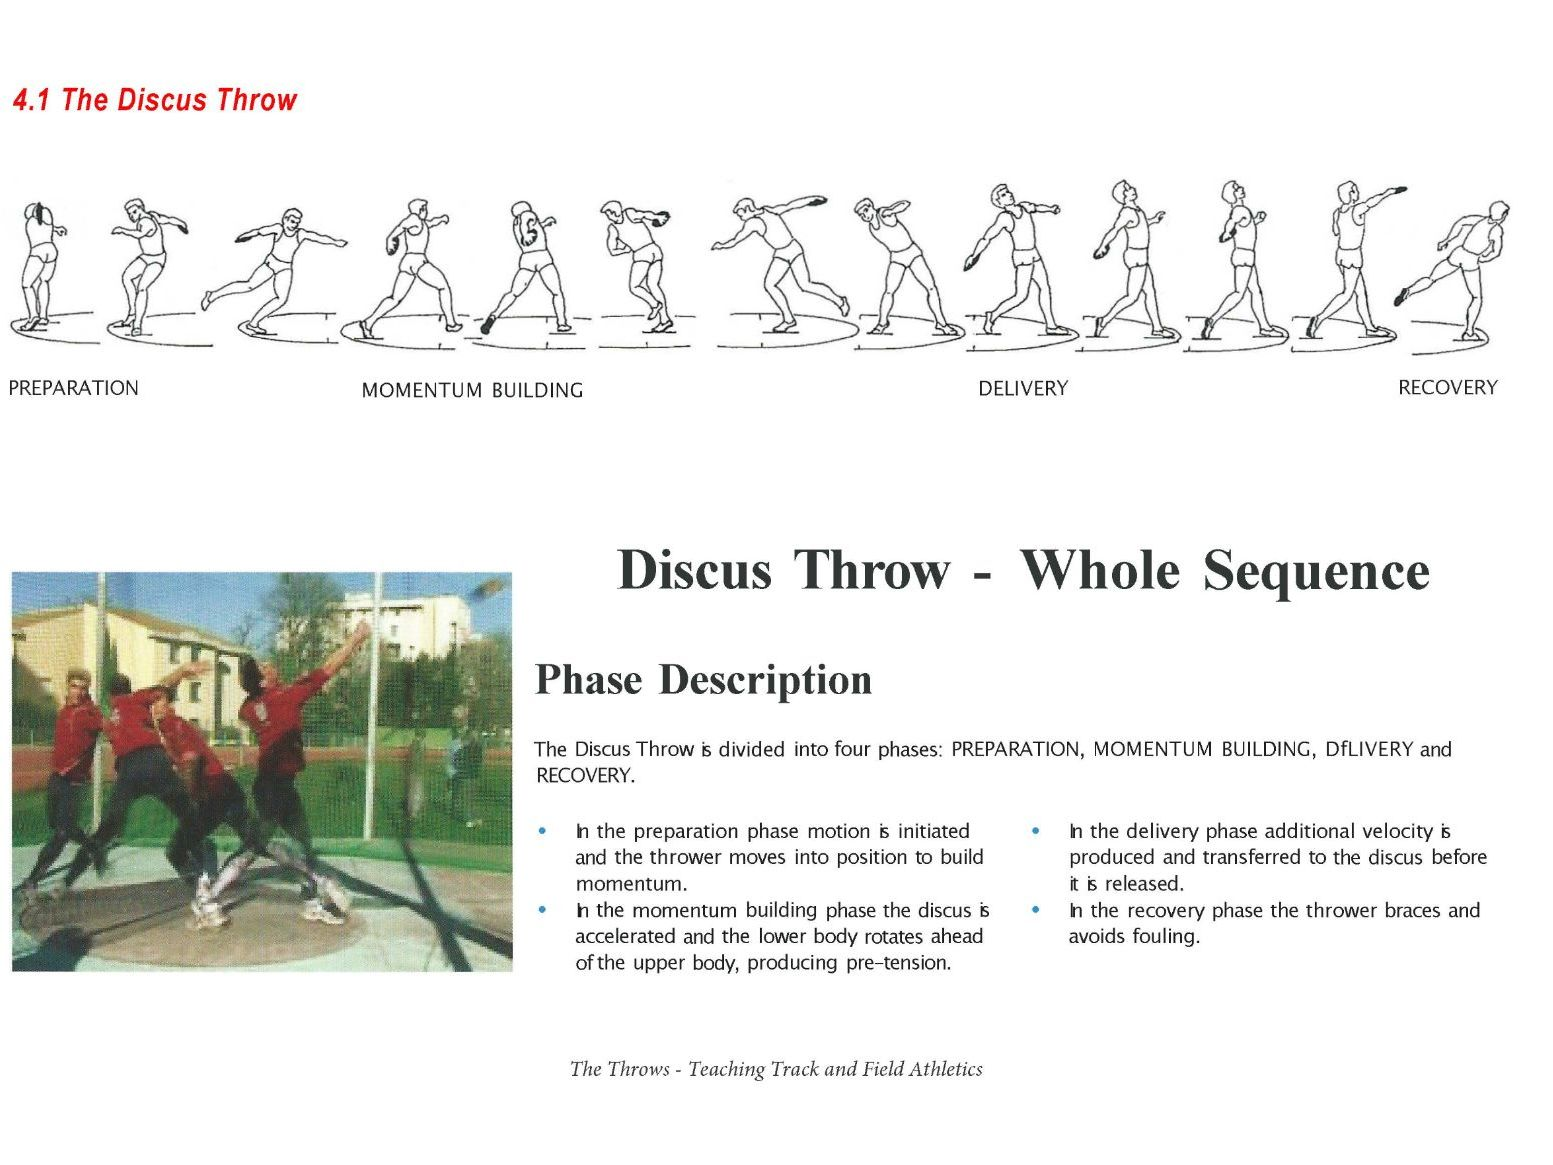 Teaching the Throws in Athletics